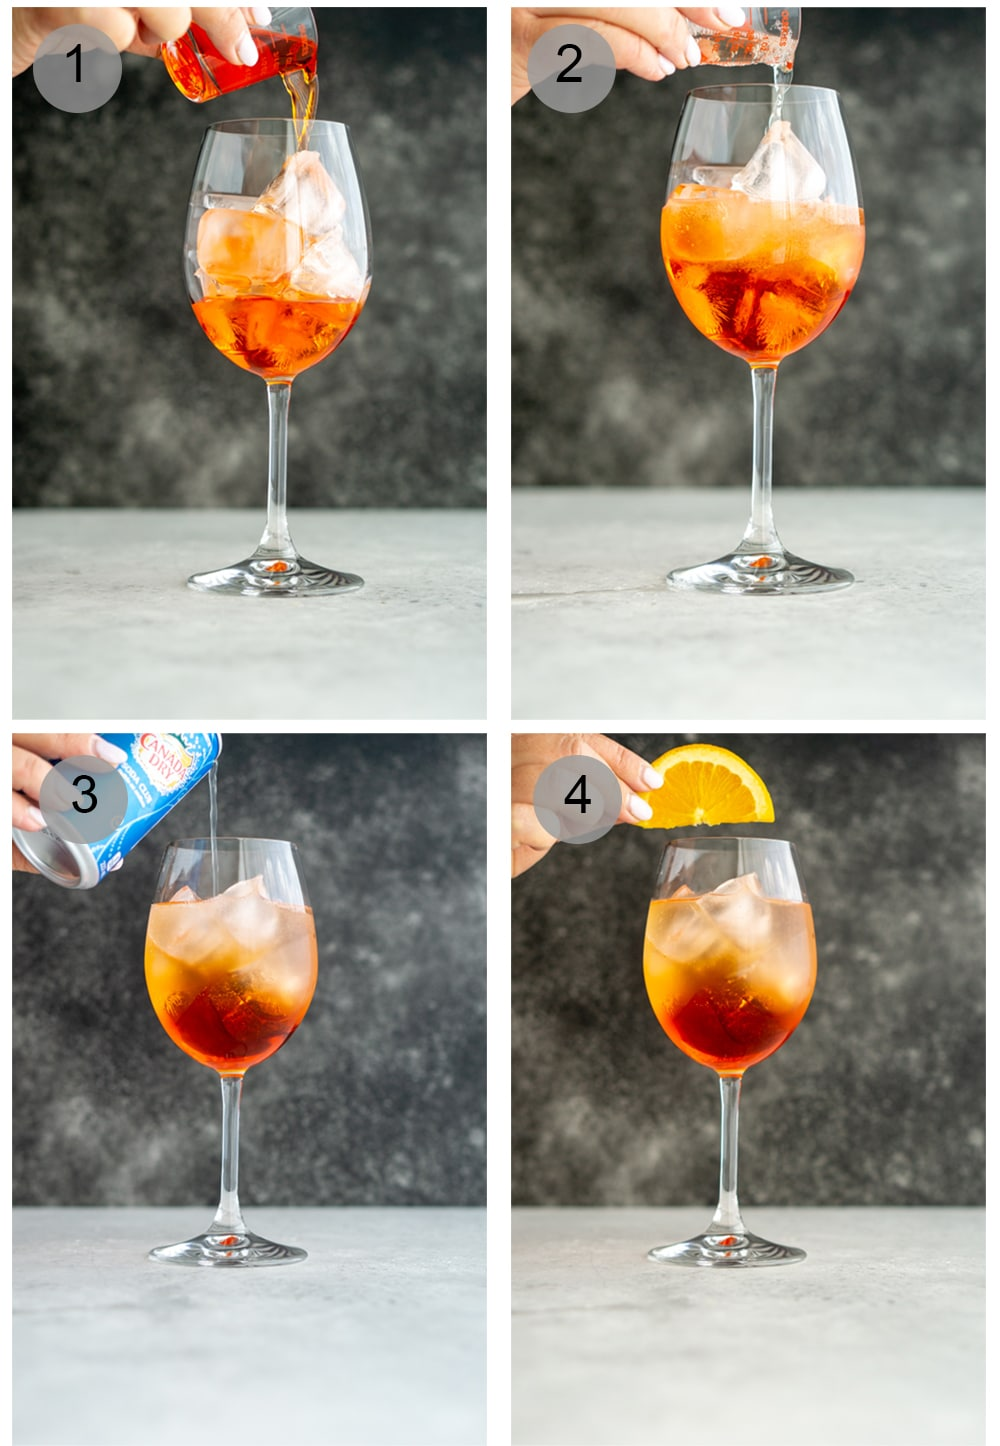 Step by step photos on how to make an aperol spritz